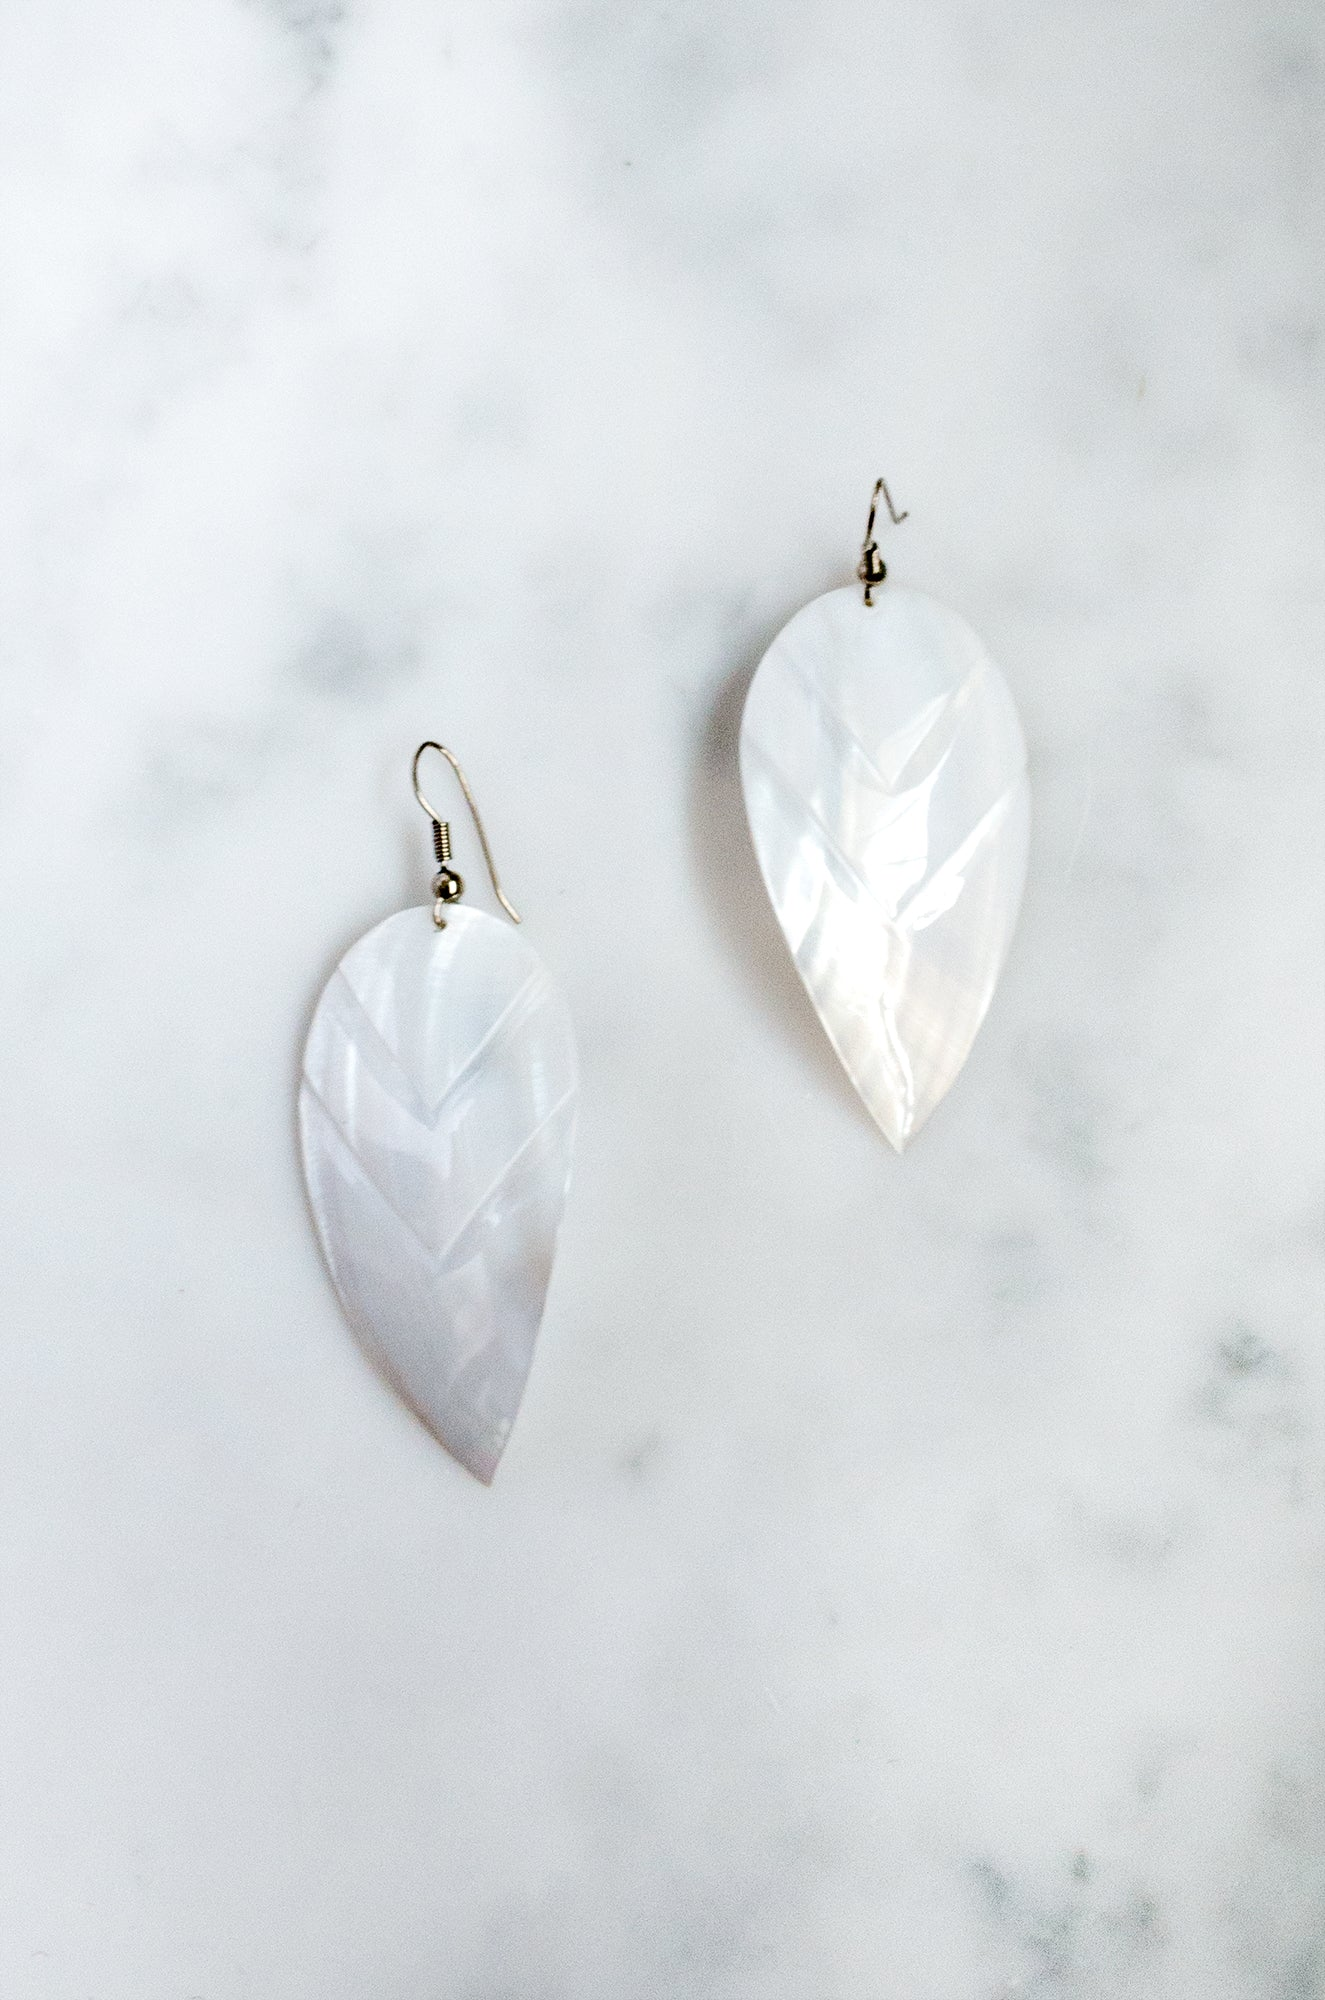 Mother-of-pearl shell earrings with engraved leaf-shaped design and silver-tone wire fastening.